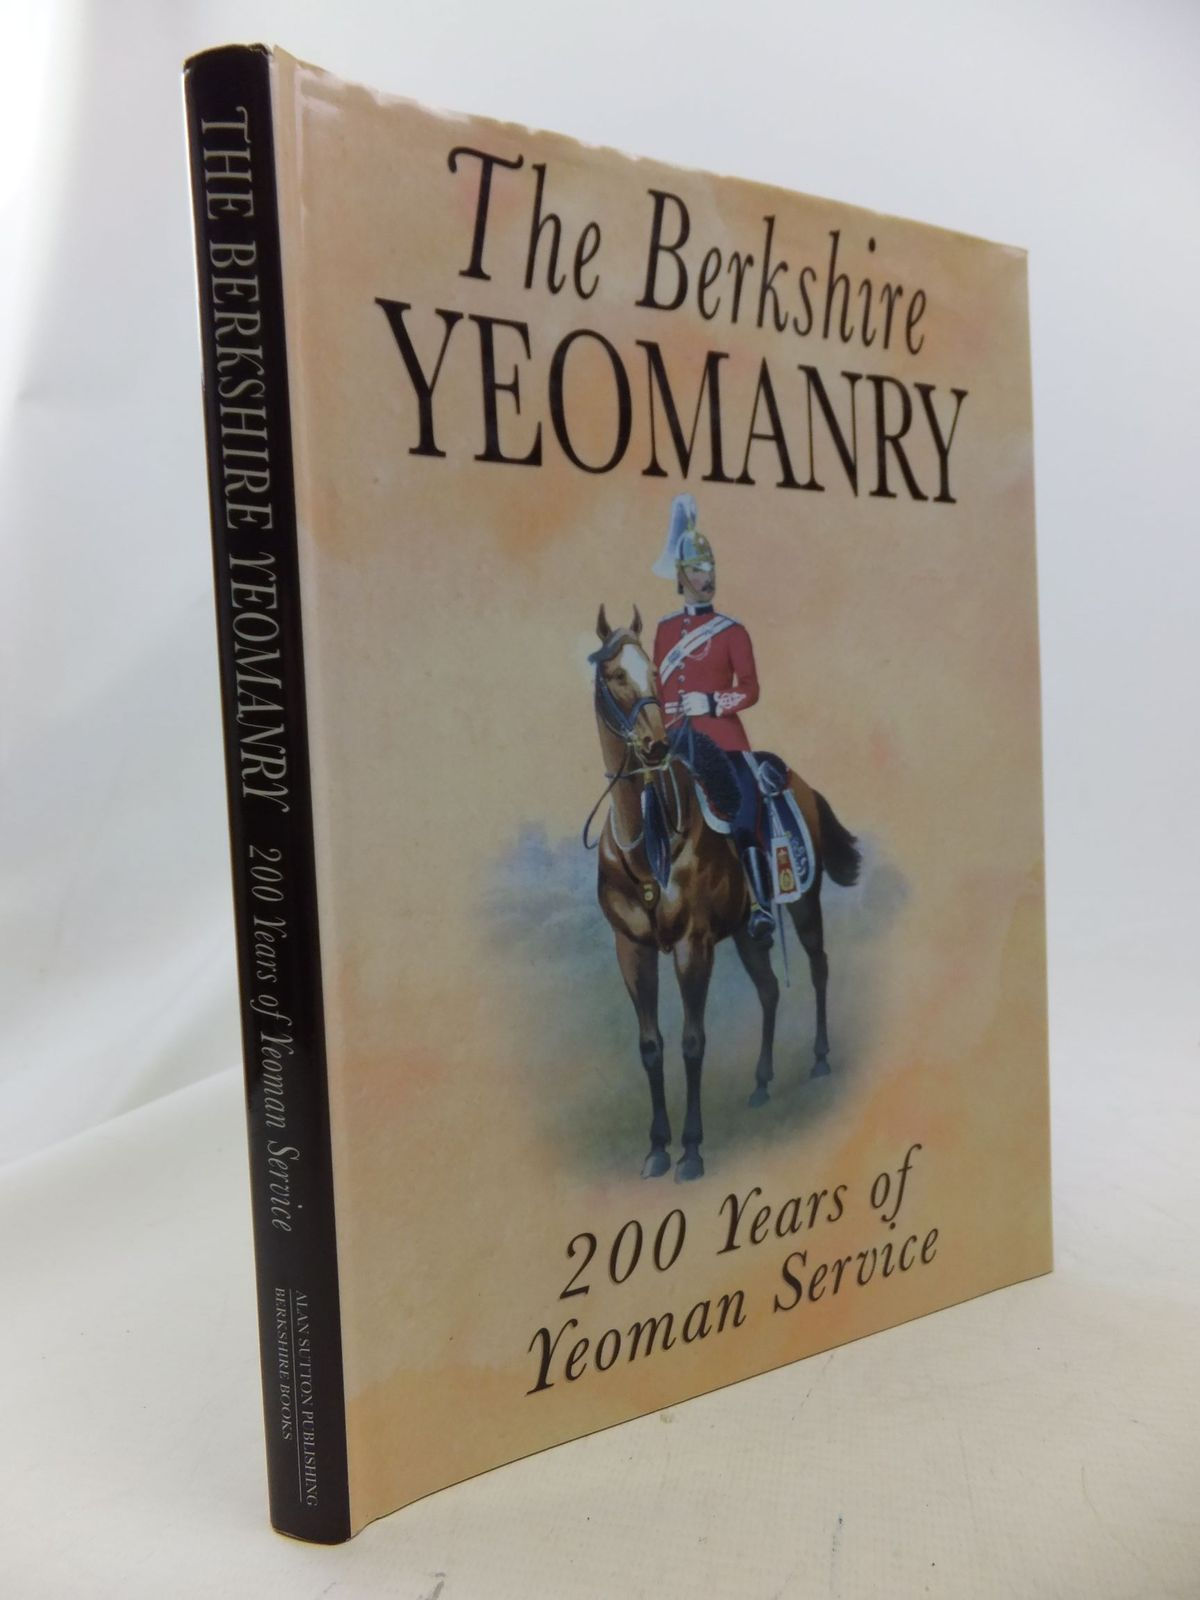 Photo of THE BERKSHIRE YEOMANRY 200 YEARS OF YEOMAN SERVICE written by Verey, Anthony